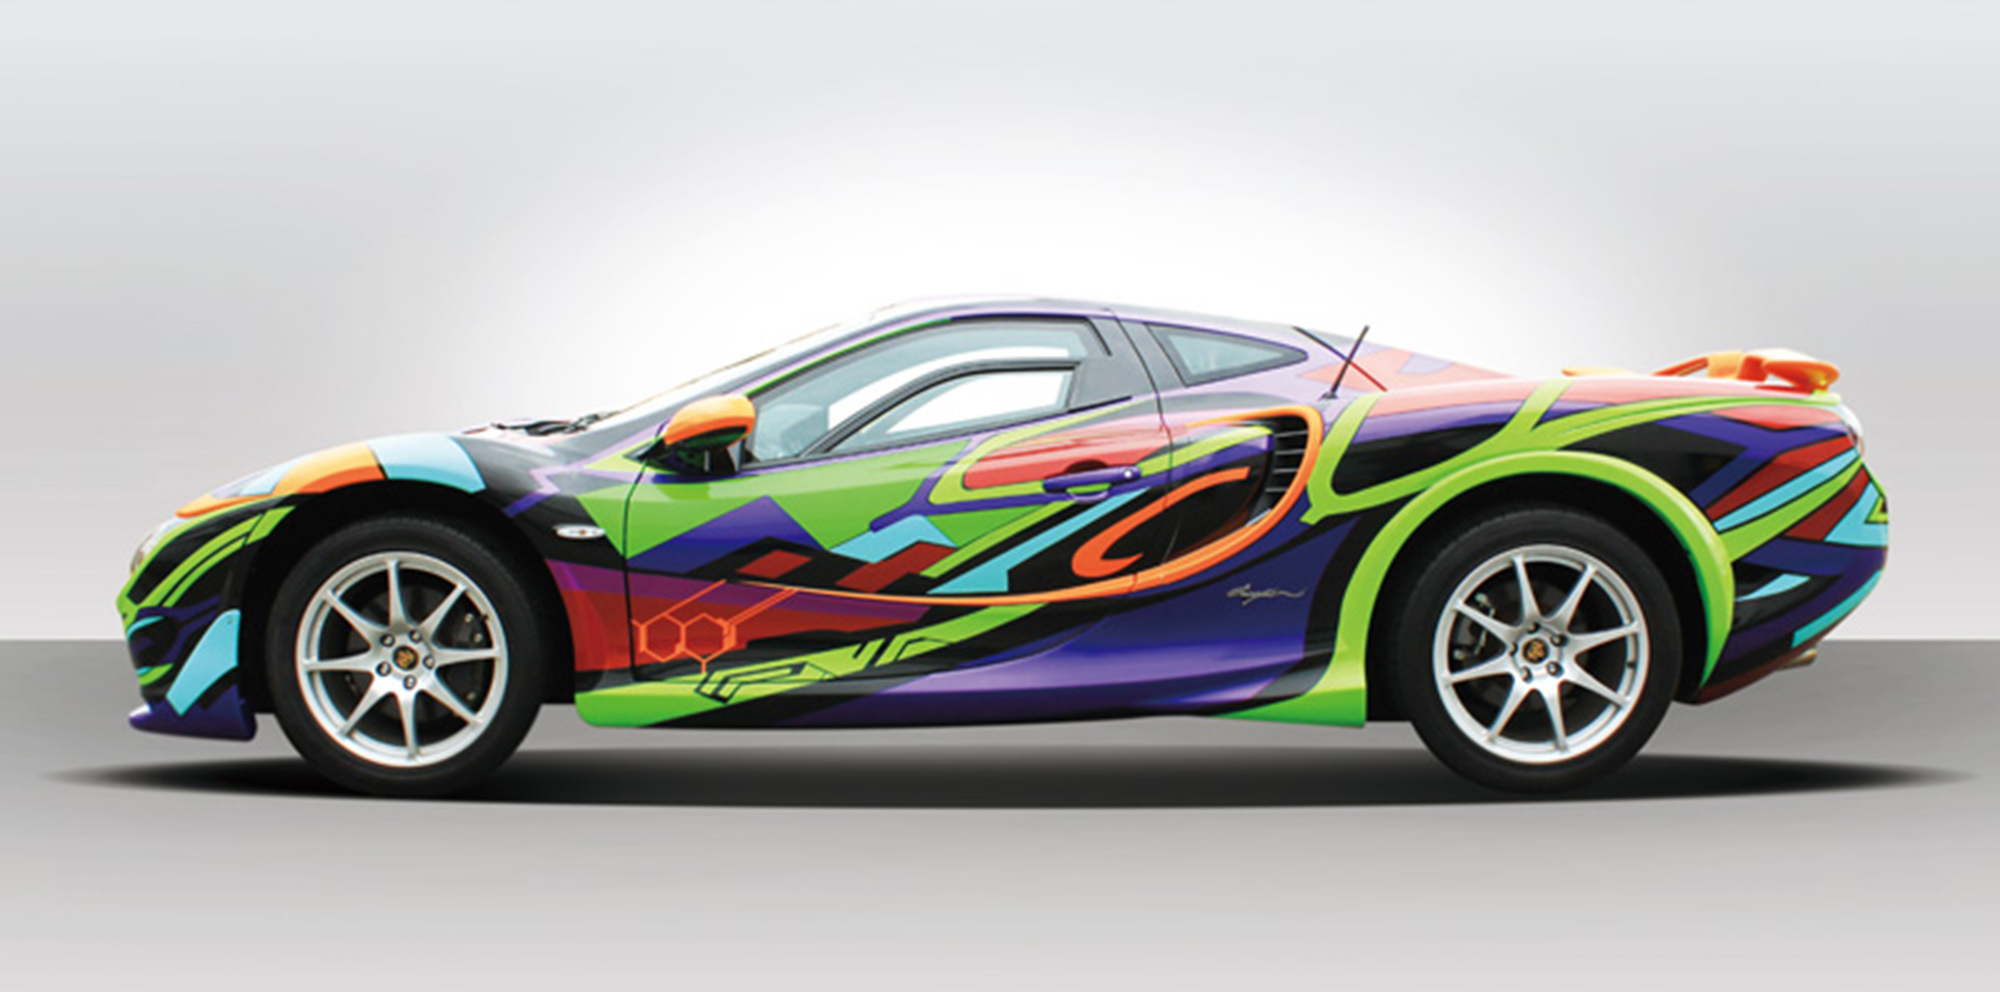 Mitsuoka Orochi Evangelion Edition will be the car's swansong ...